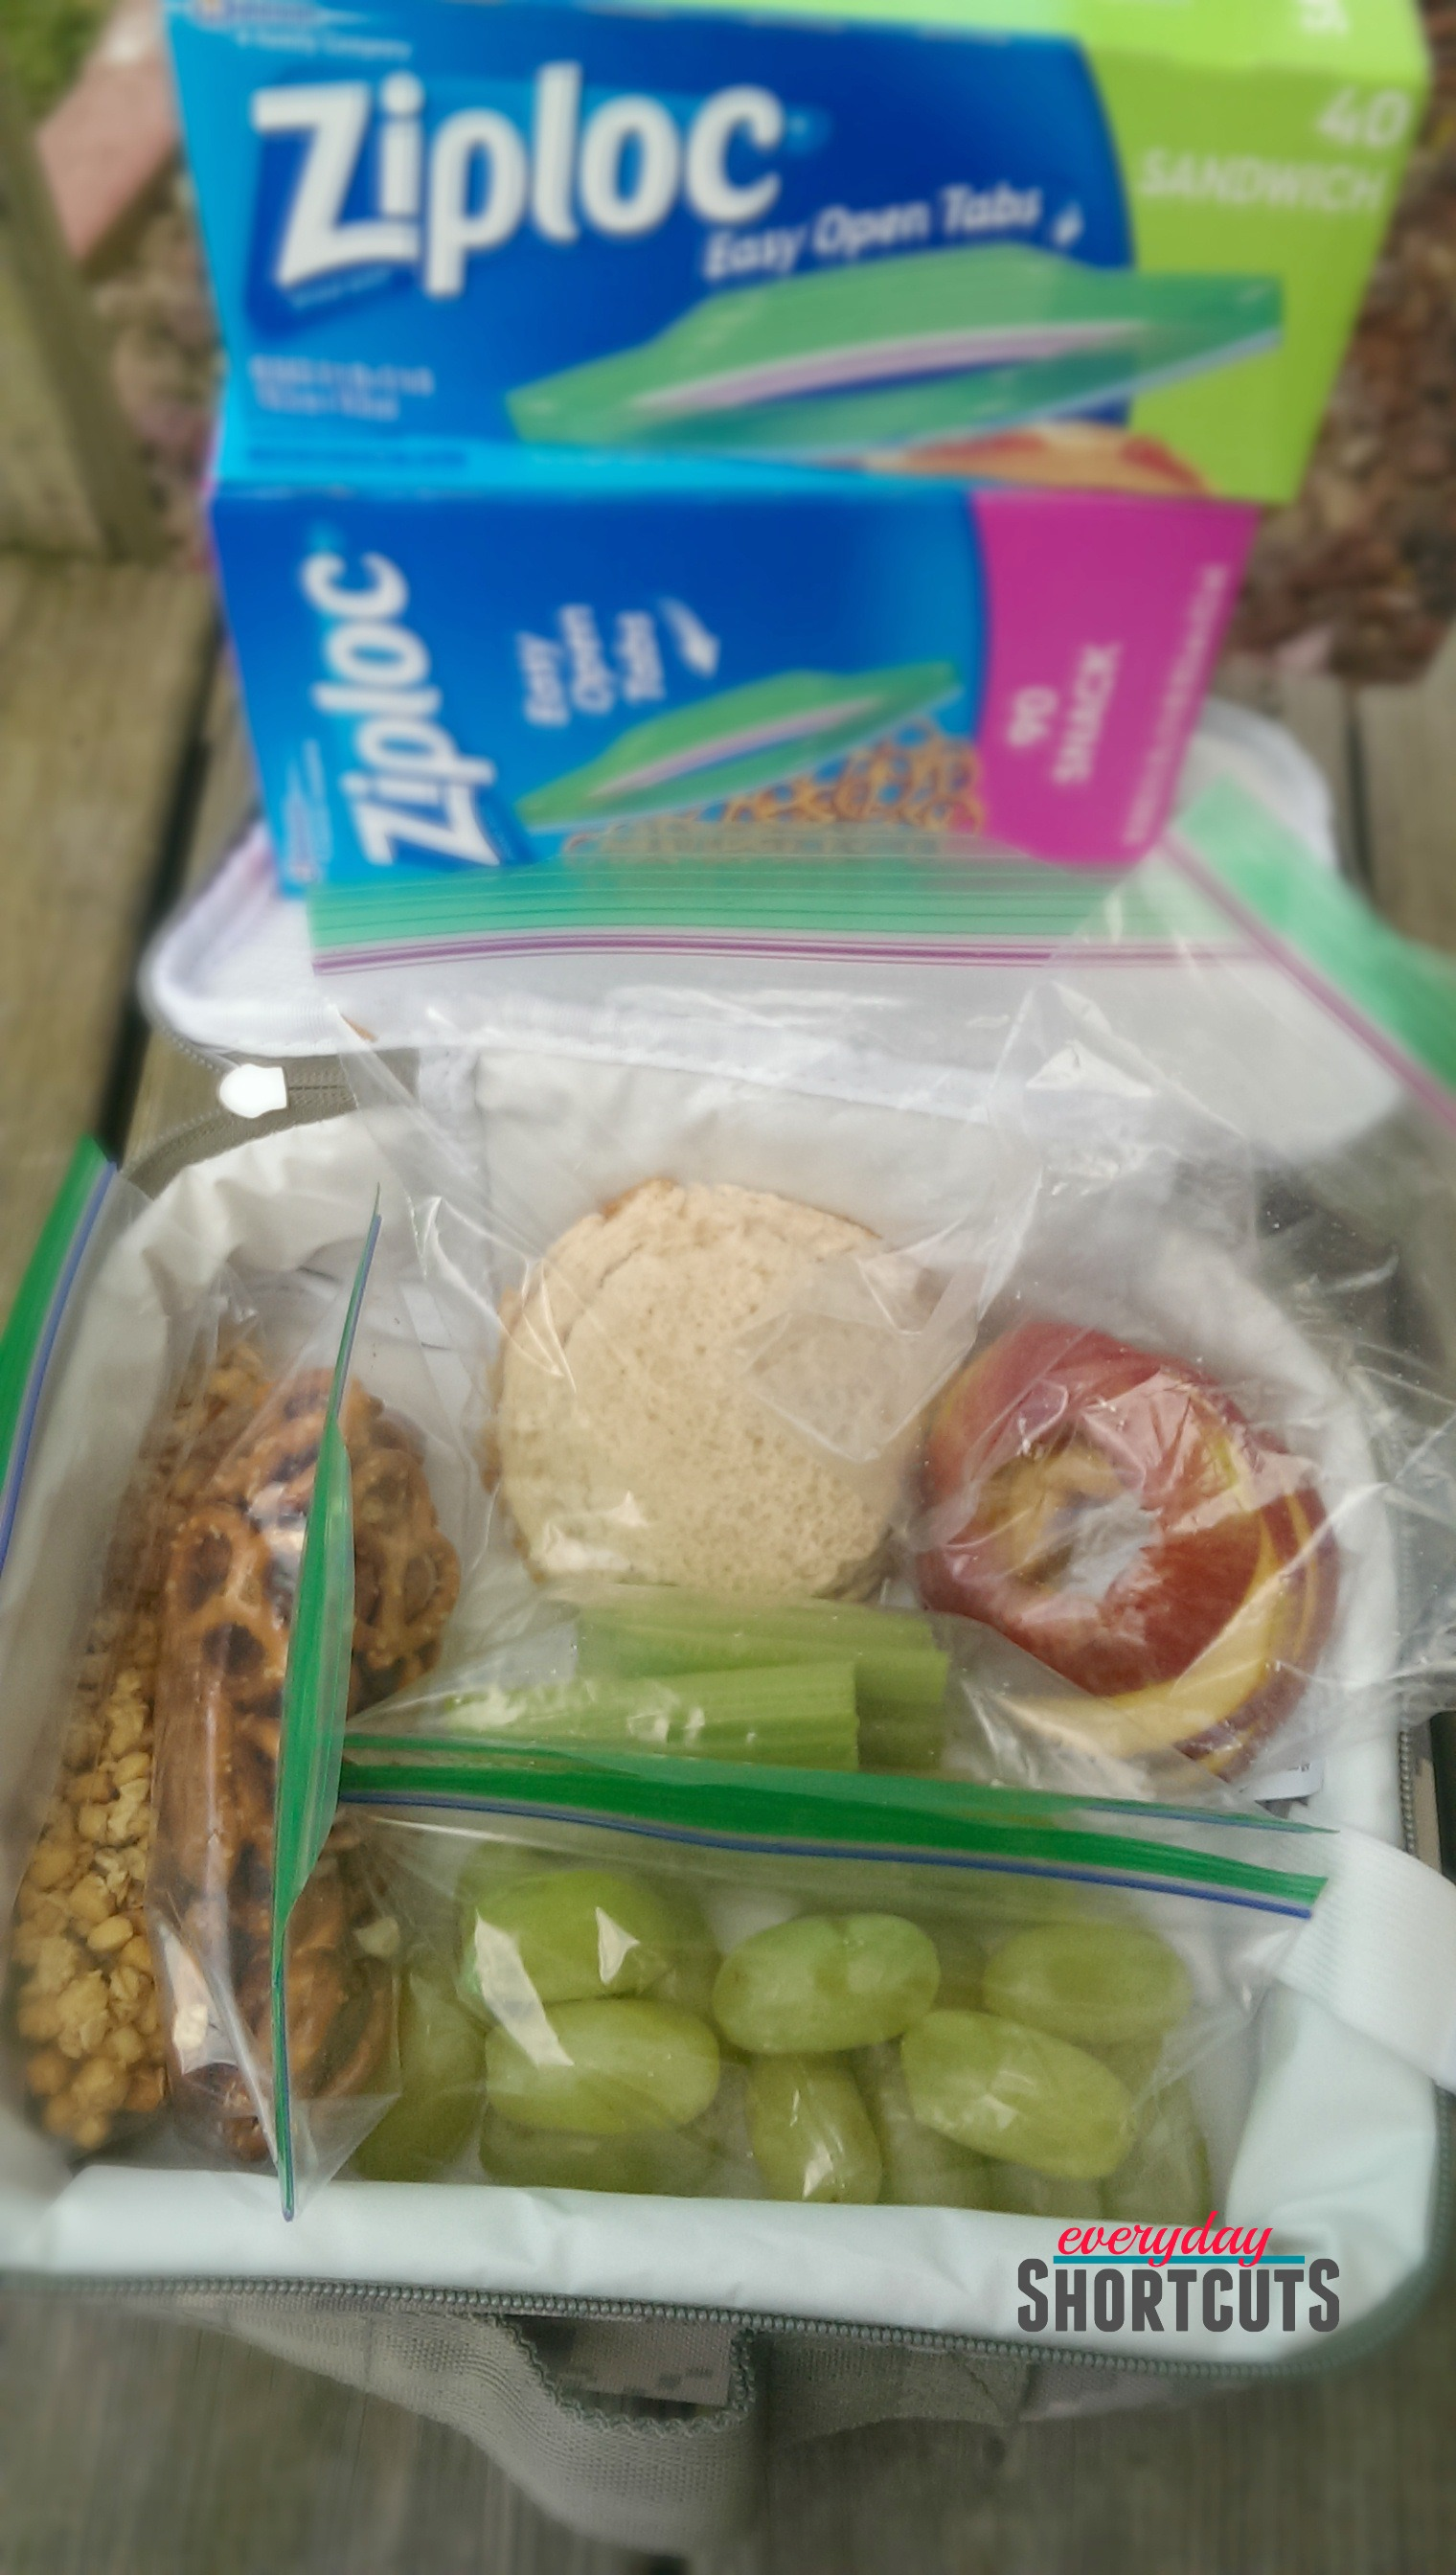 back-to-school-with-ziploc-brand-bags